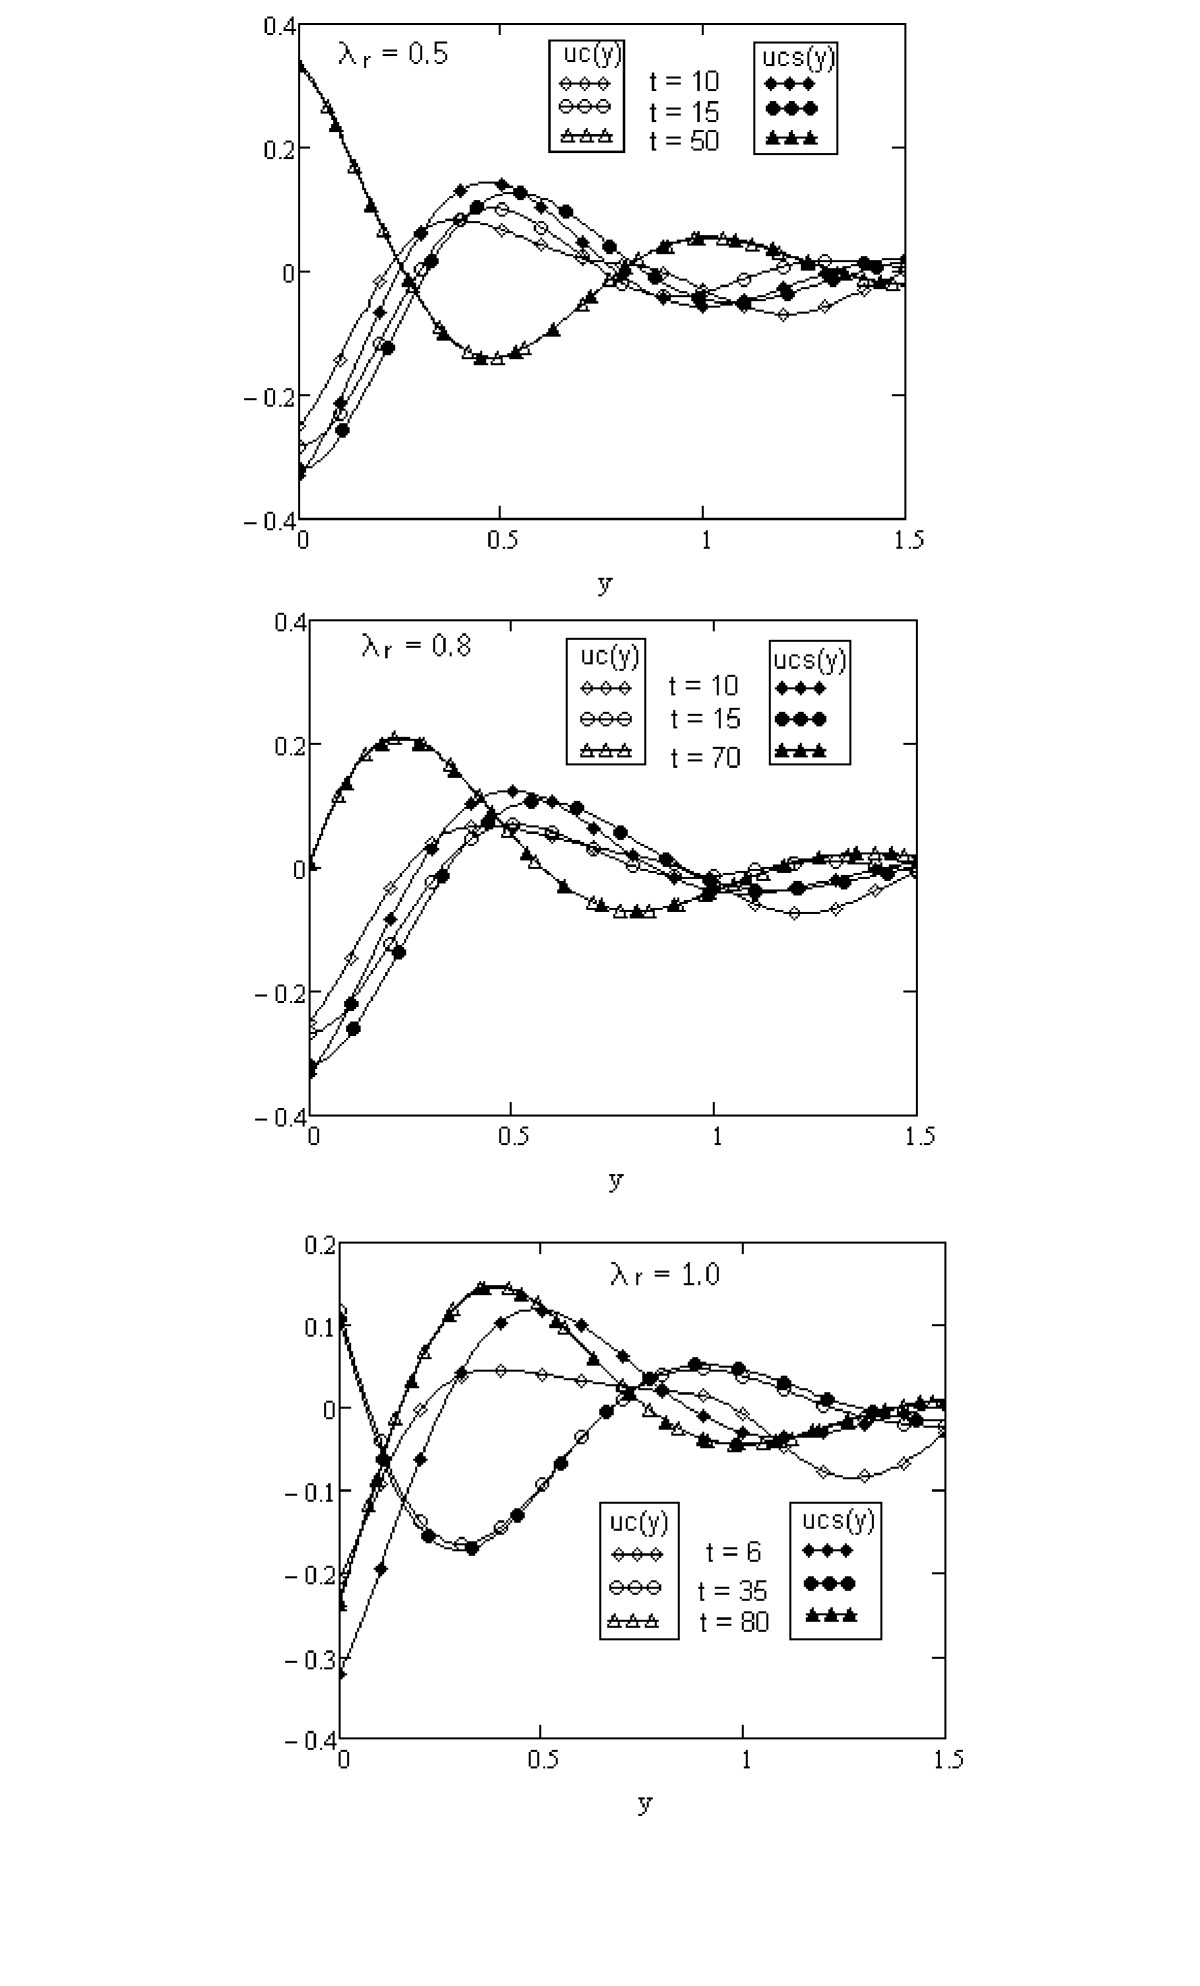 http://static-content.springer.com/image/art%3A10.1186%2F1687-2770-2012-48/MediaObjects/13661_2011_Article_139_Fig6_HTML.jpg